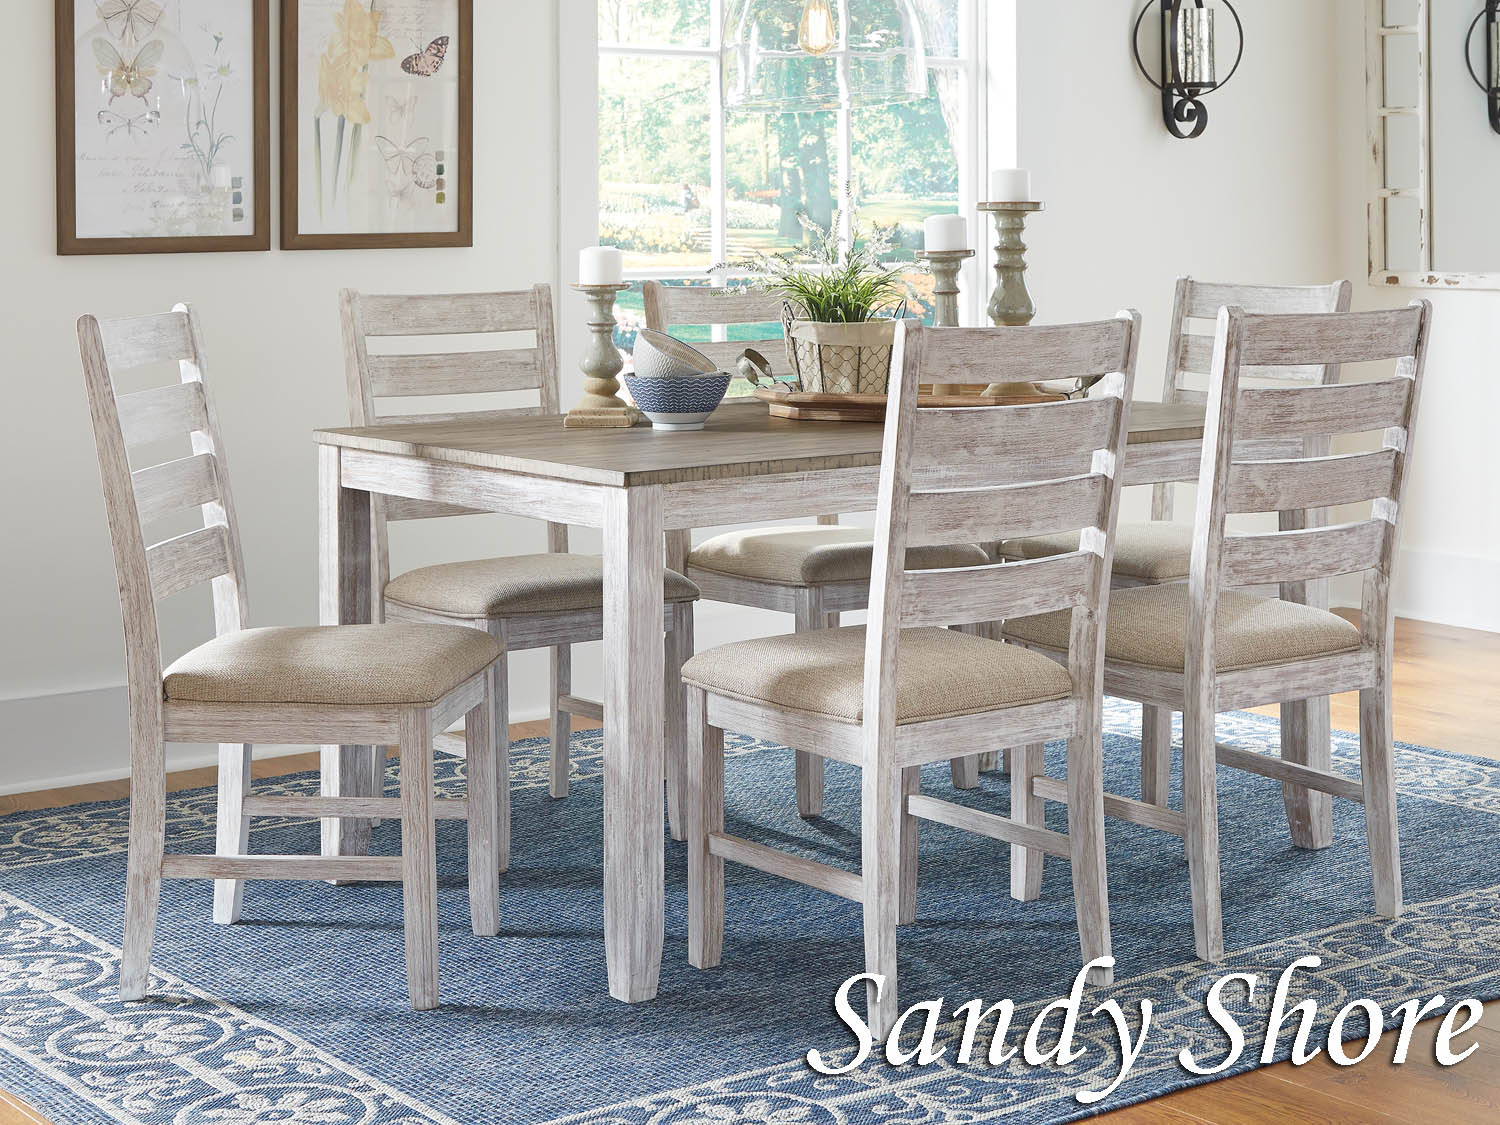 Dining Room, Table, side chairs, set, solid top, coastal, seaside, cottage, casual, Barbo's Furniture